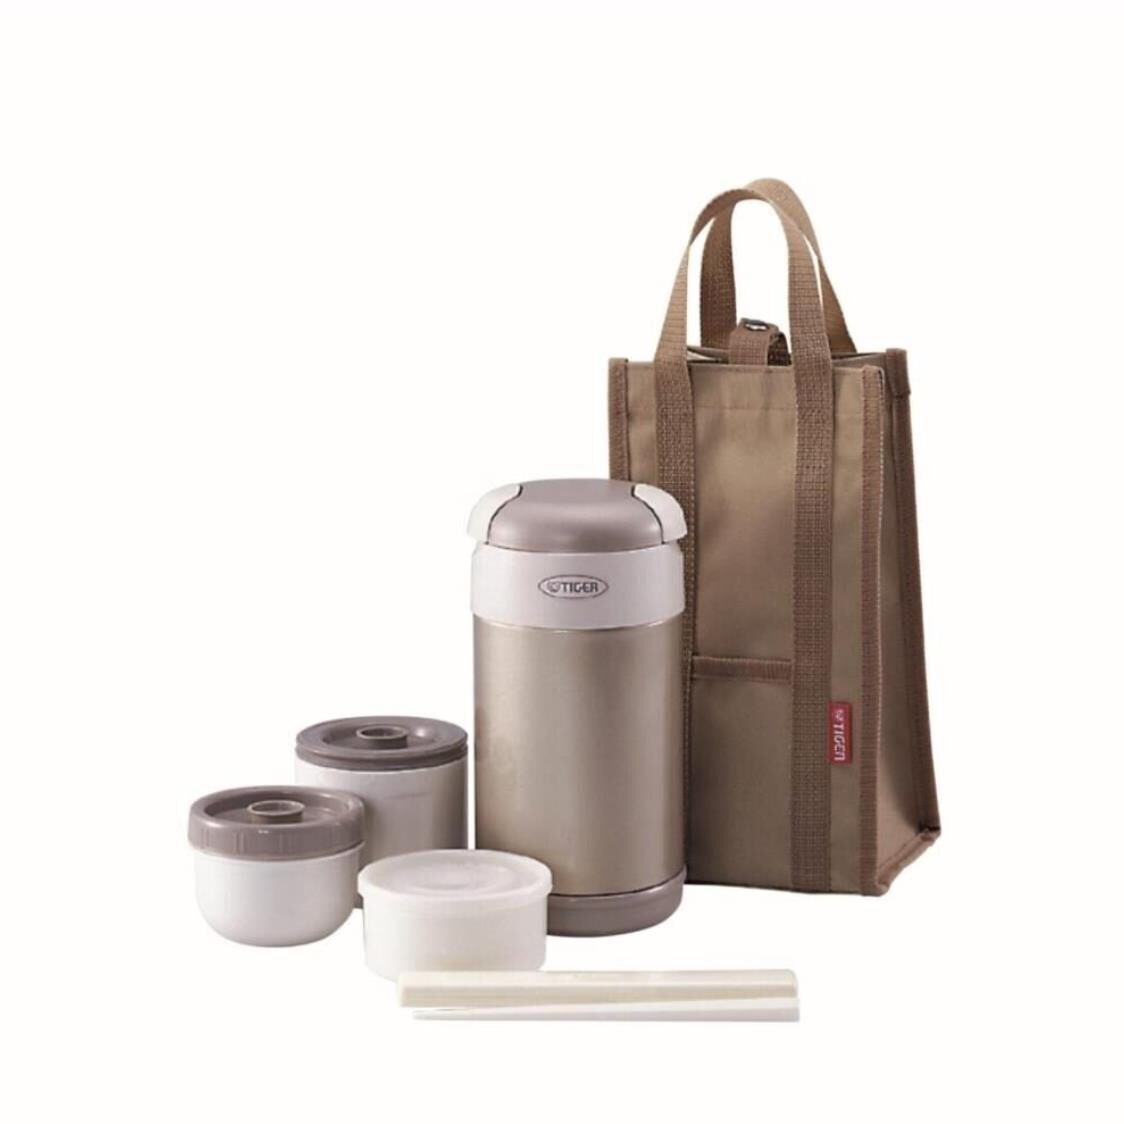 Tiger 920ml Double Stainless Steel Vacuumised Lunch Box With Bag